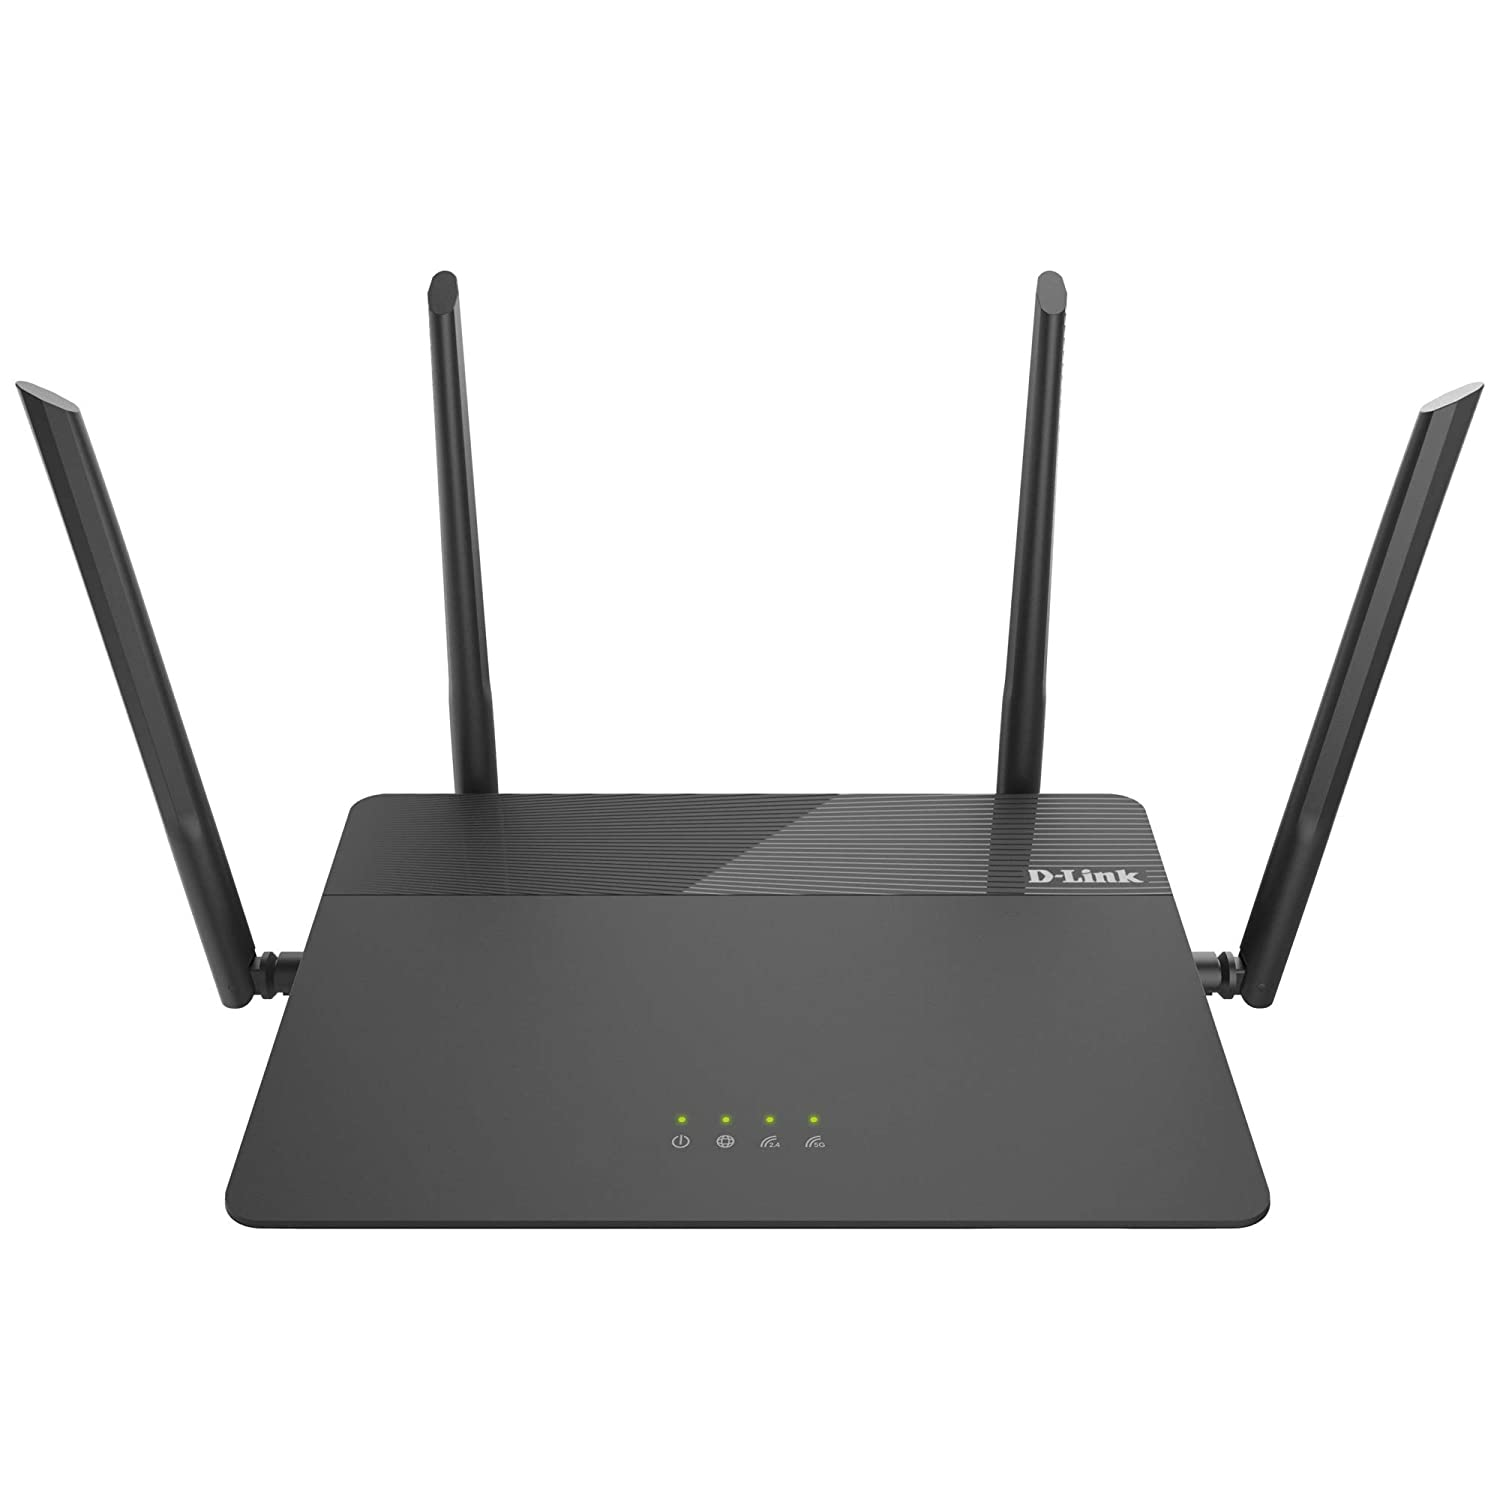 D-Link AC1900 Wireless WiFi Router – Smart Dual Band – MU-MIMO – Powerful Dual Core Processor – Fast Wi-Fi for Gaming and 4K Streaming – Reliable Coverage (DIR-878)